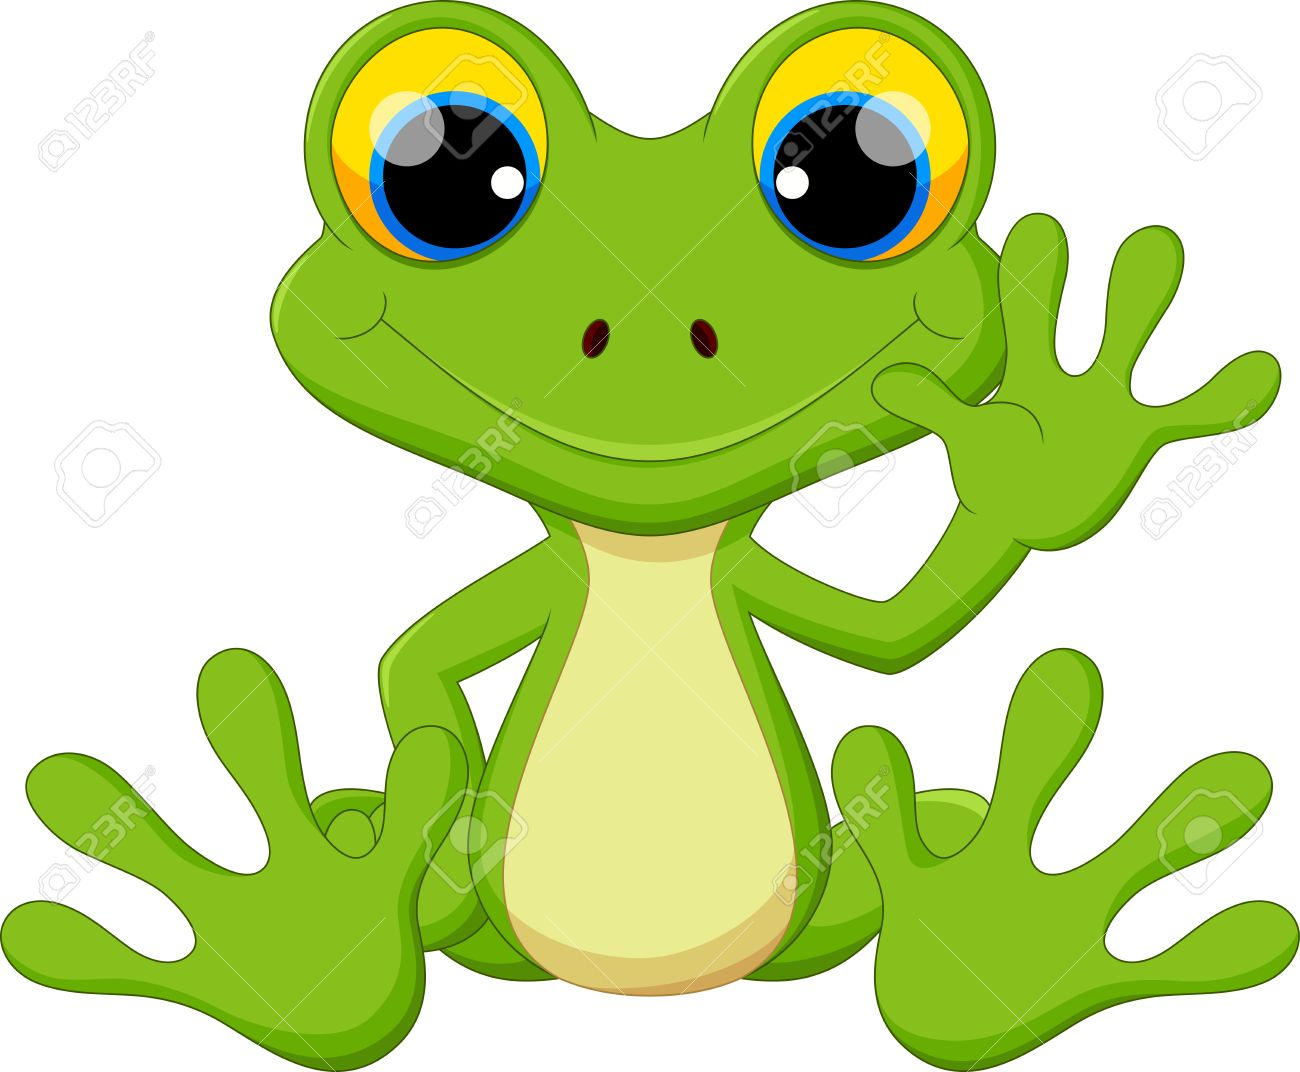 cute frog cartoon sitting royalty free cliparts vectors and stock rh 123rf com Vector The Crocodile Cute Frog Silhouette